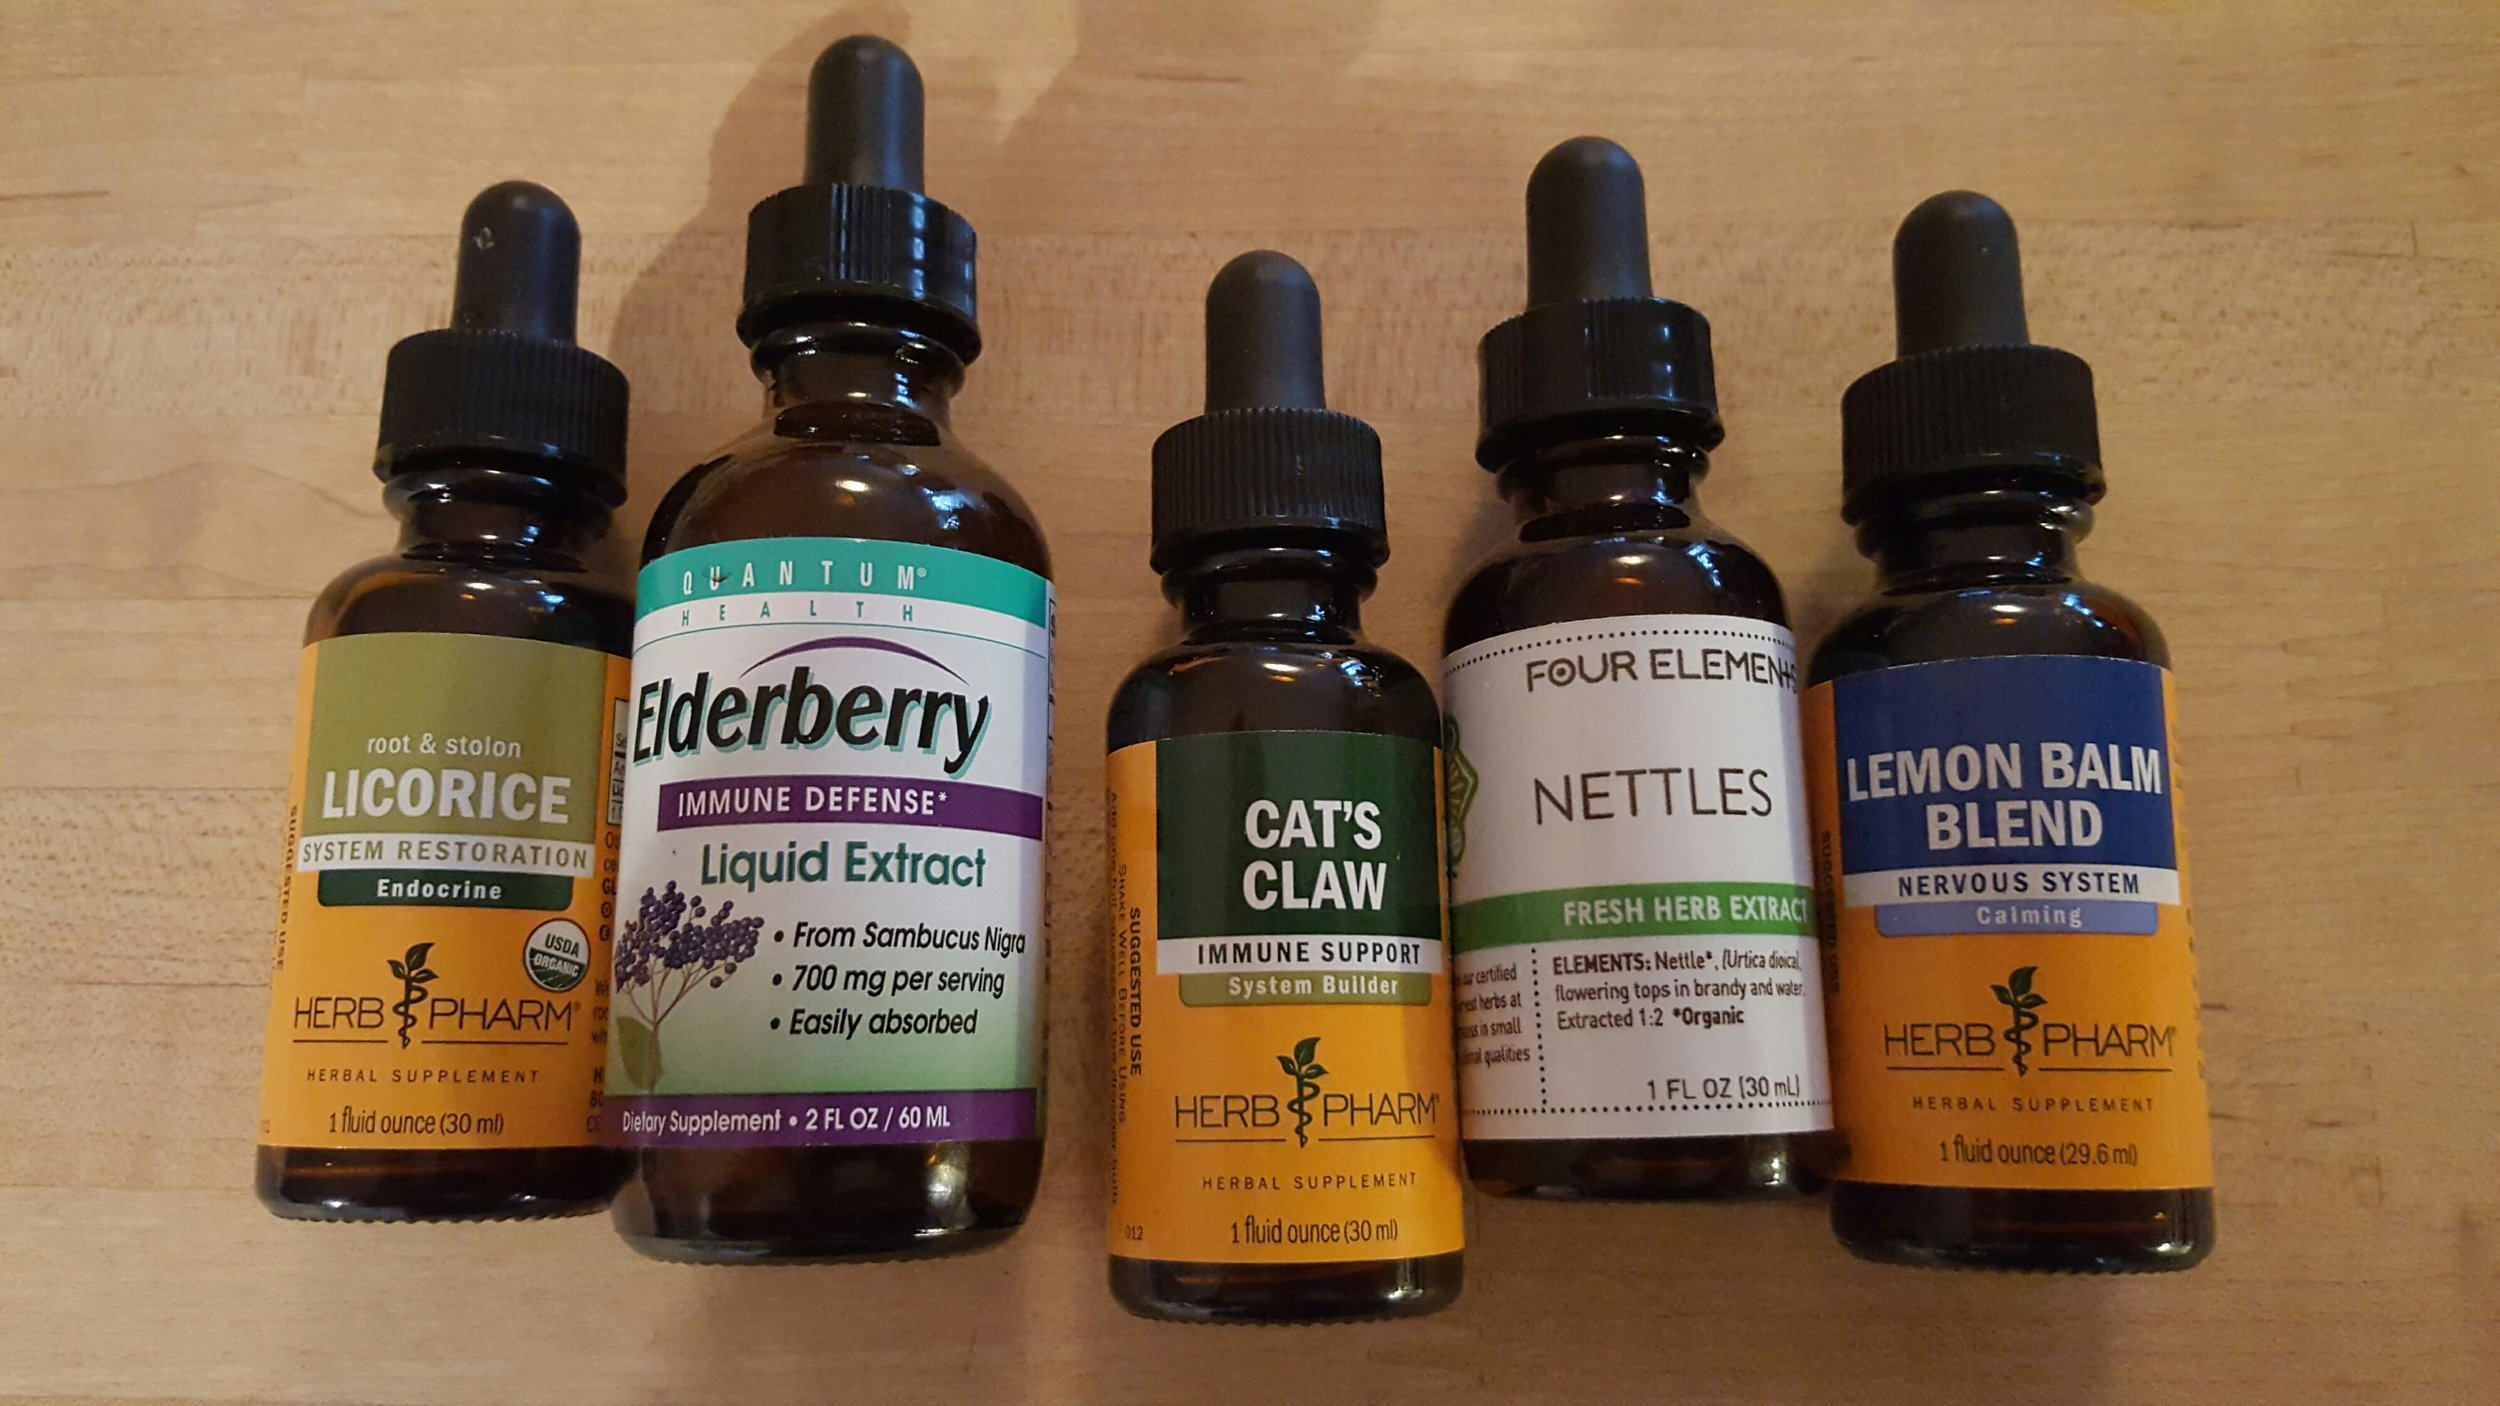 Western medicine offers not treatment for EBV other than rest and a healthy diet so I am trying to heal myself through natural remedies. My army in the war against the virus. Most of the remedies taste pretty bad which makes me feel like they are working.